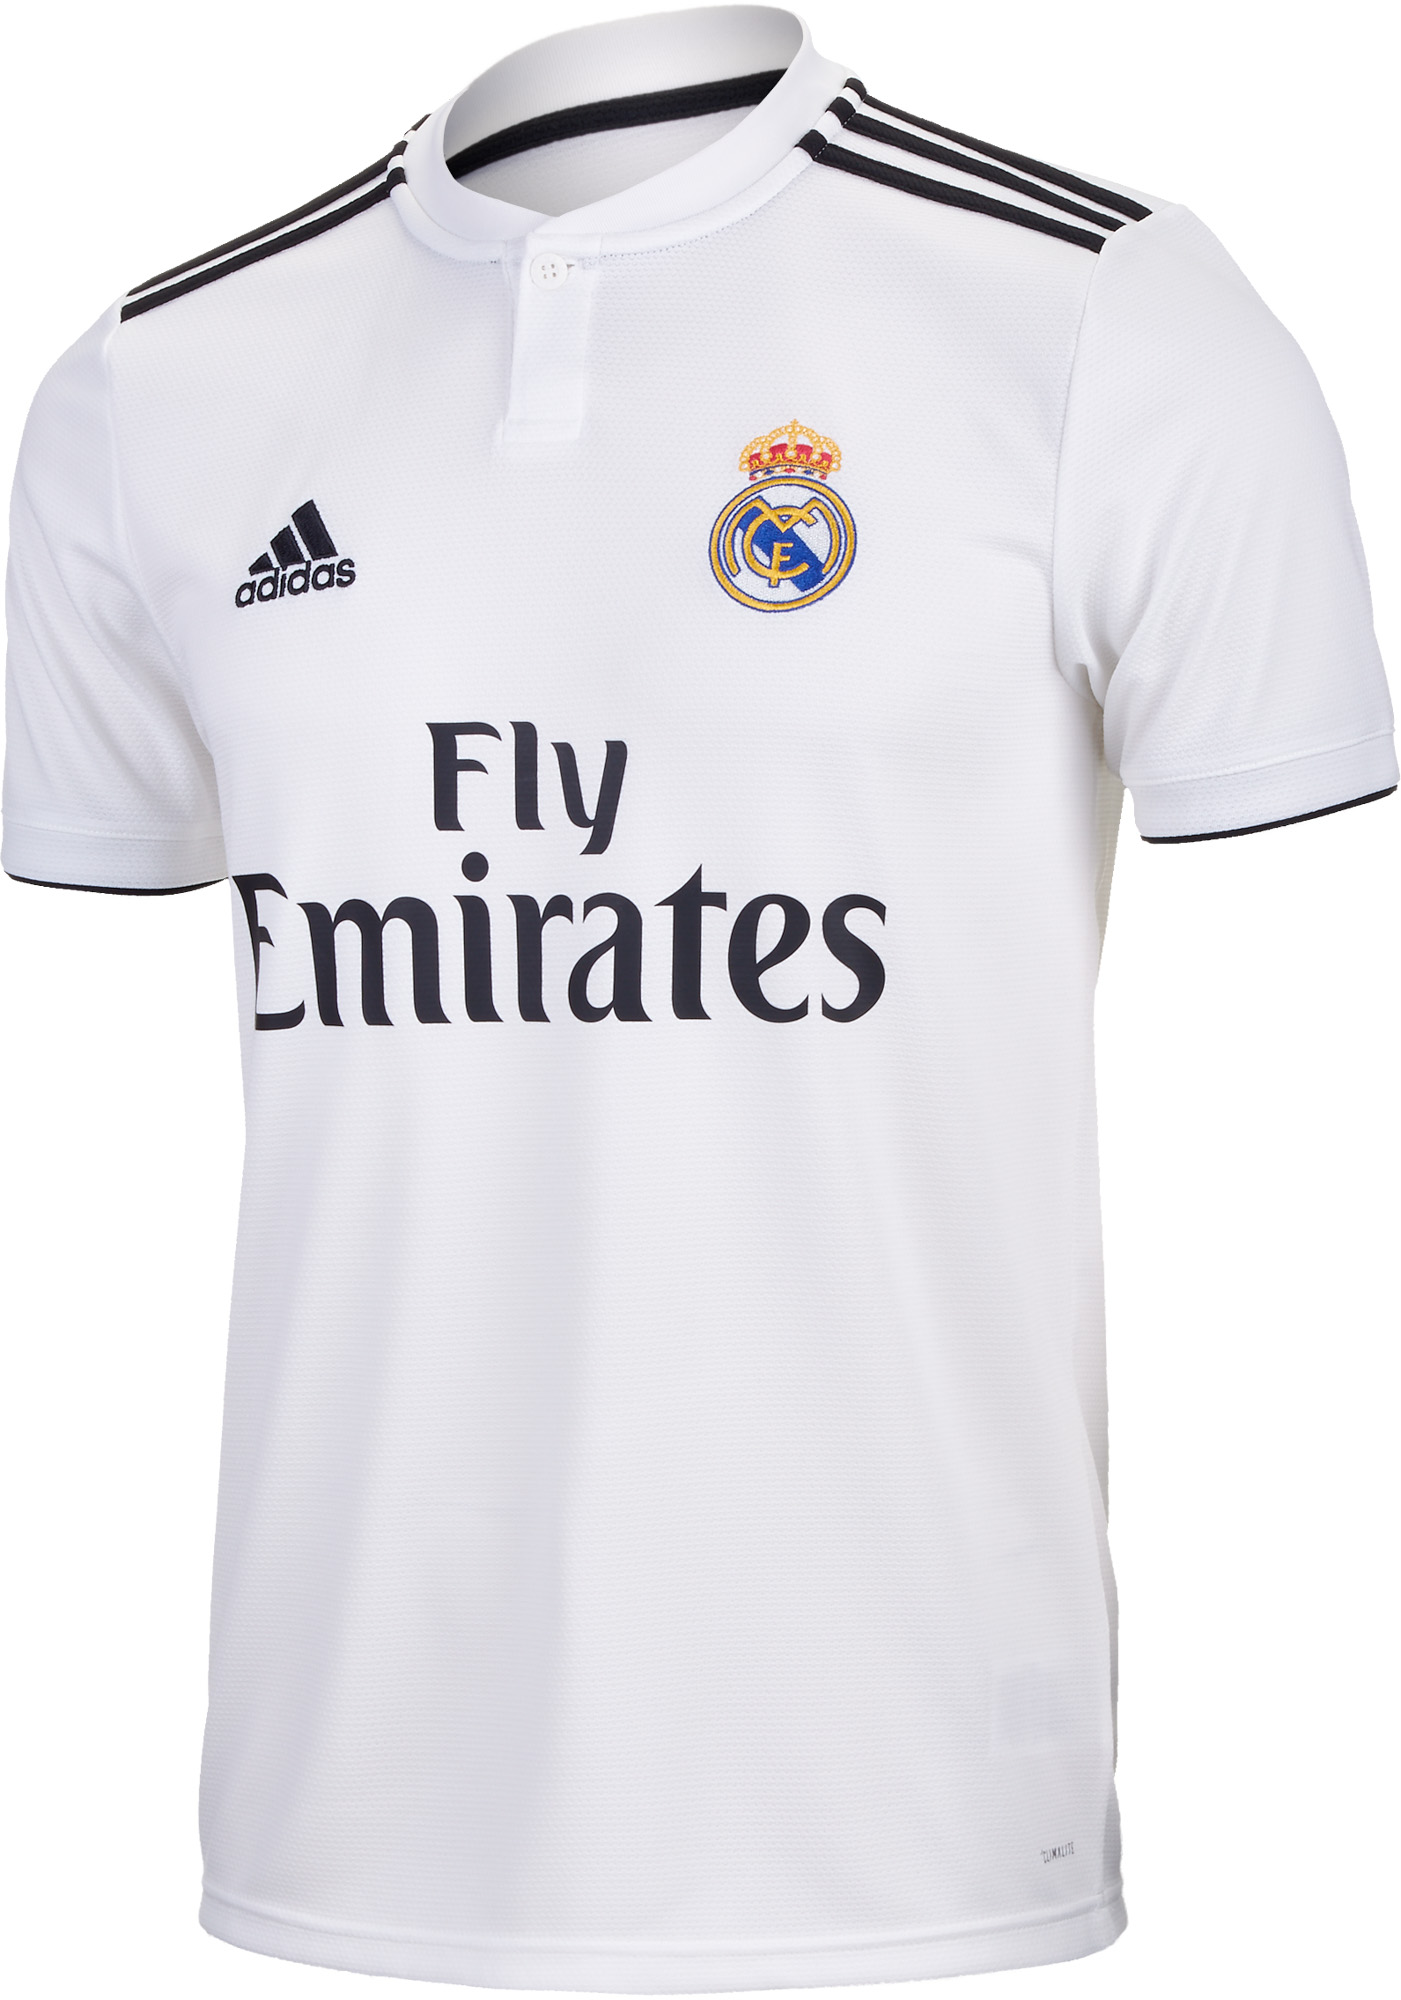 adidas Real Madrid Home Jersey - Youth - Core White/Black